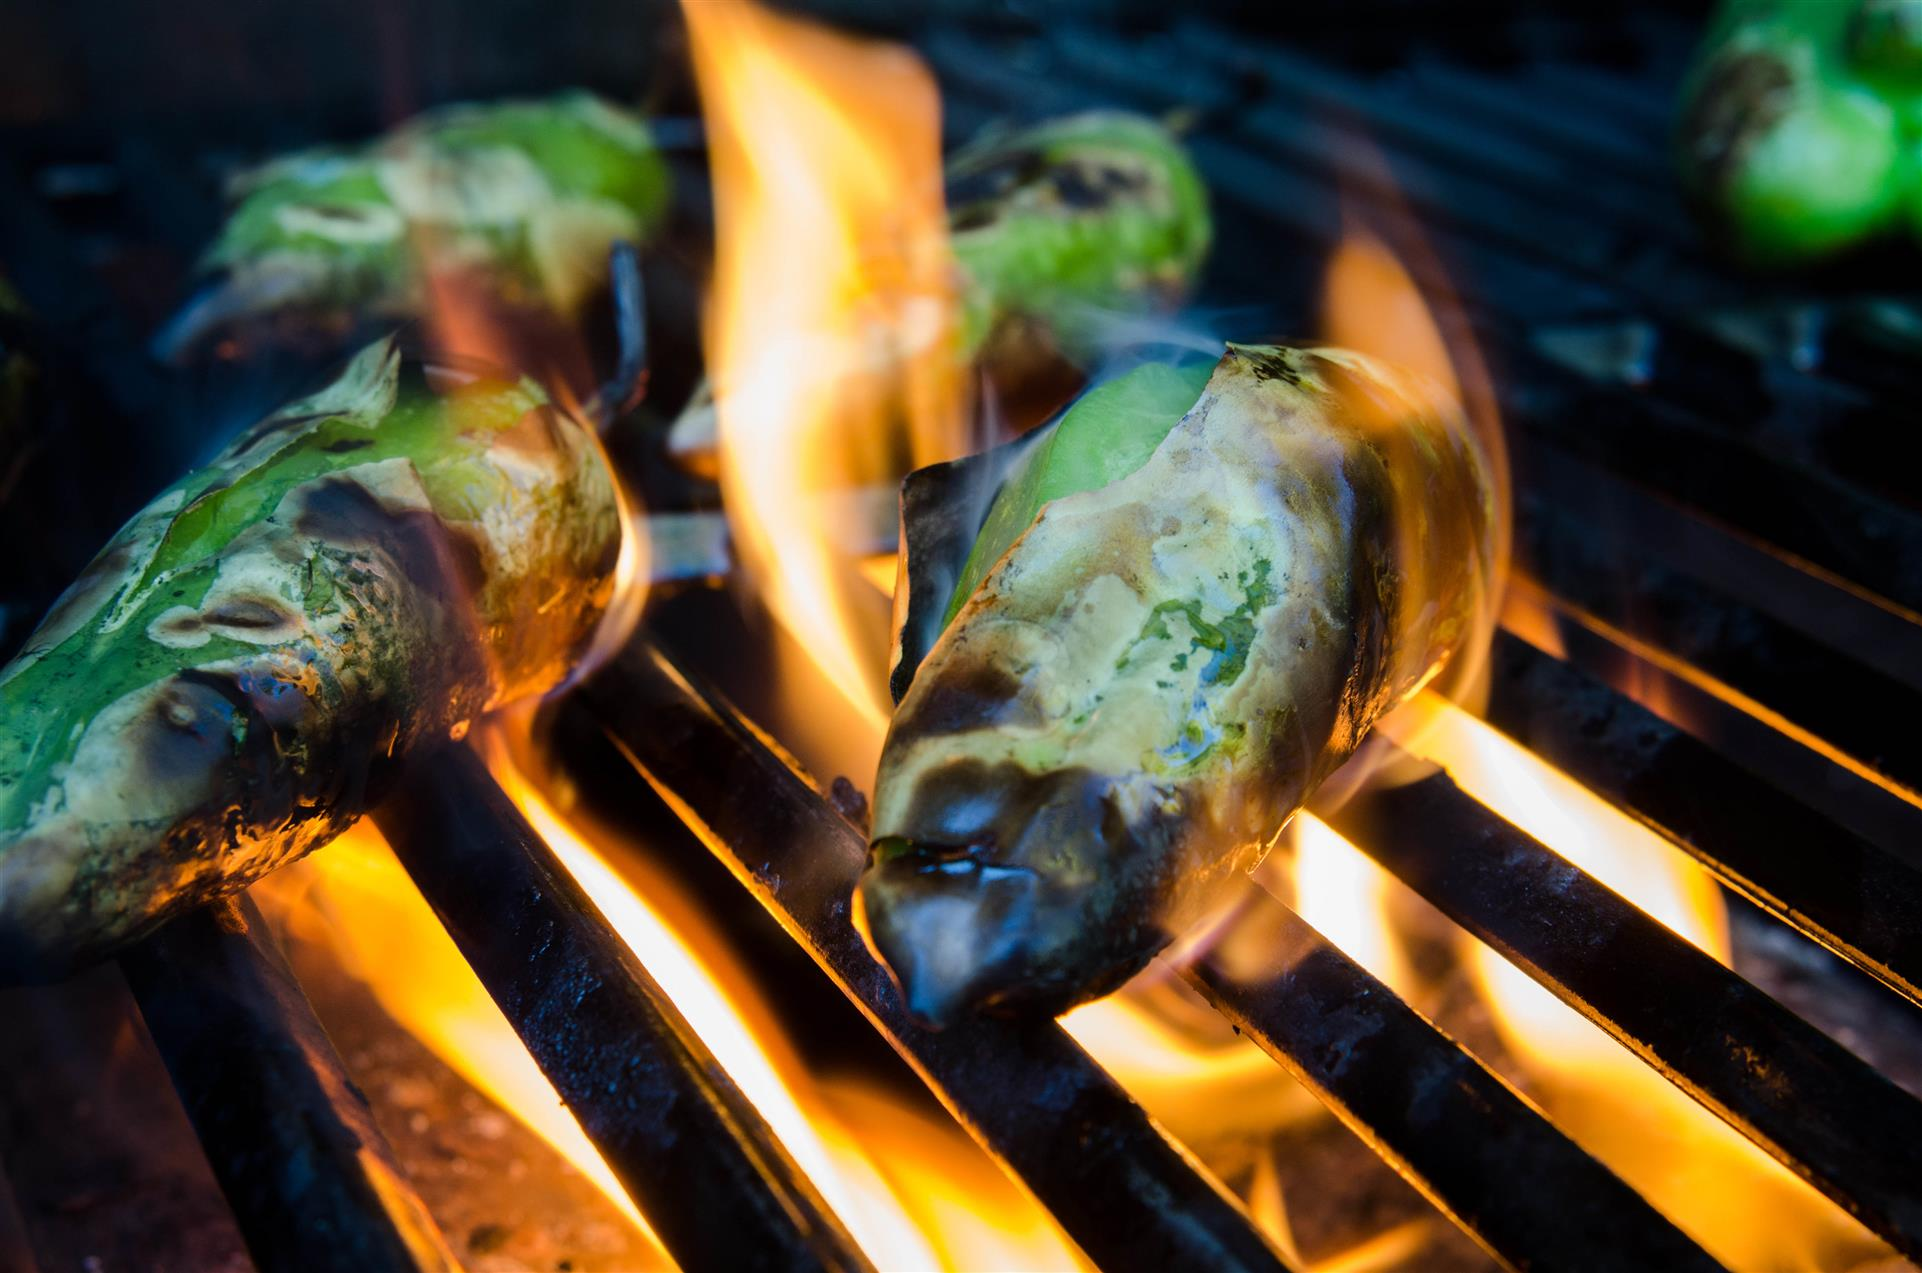 Fire roasted jalapenos on grill